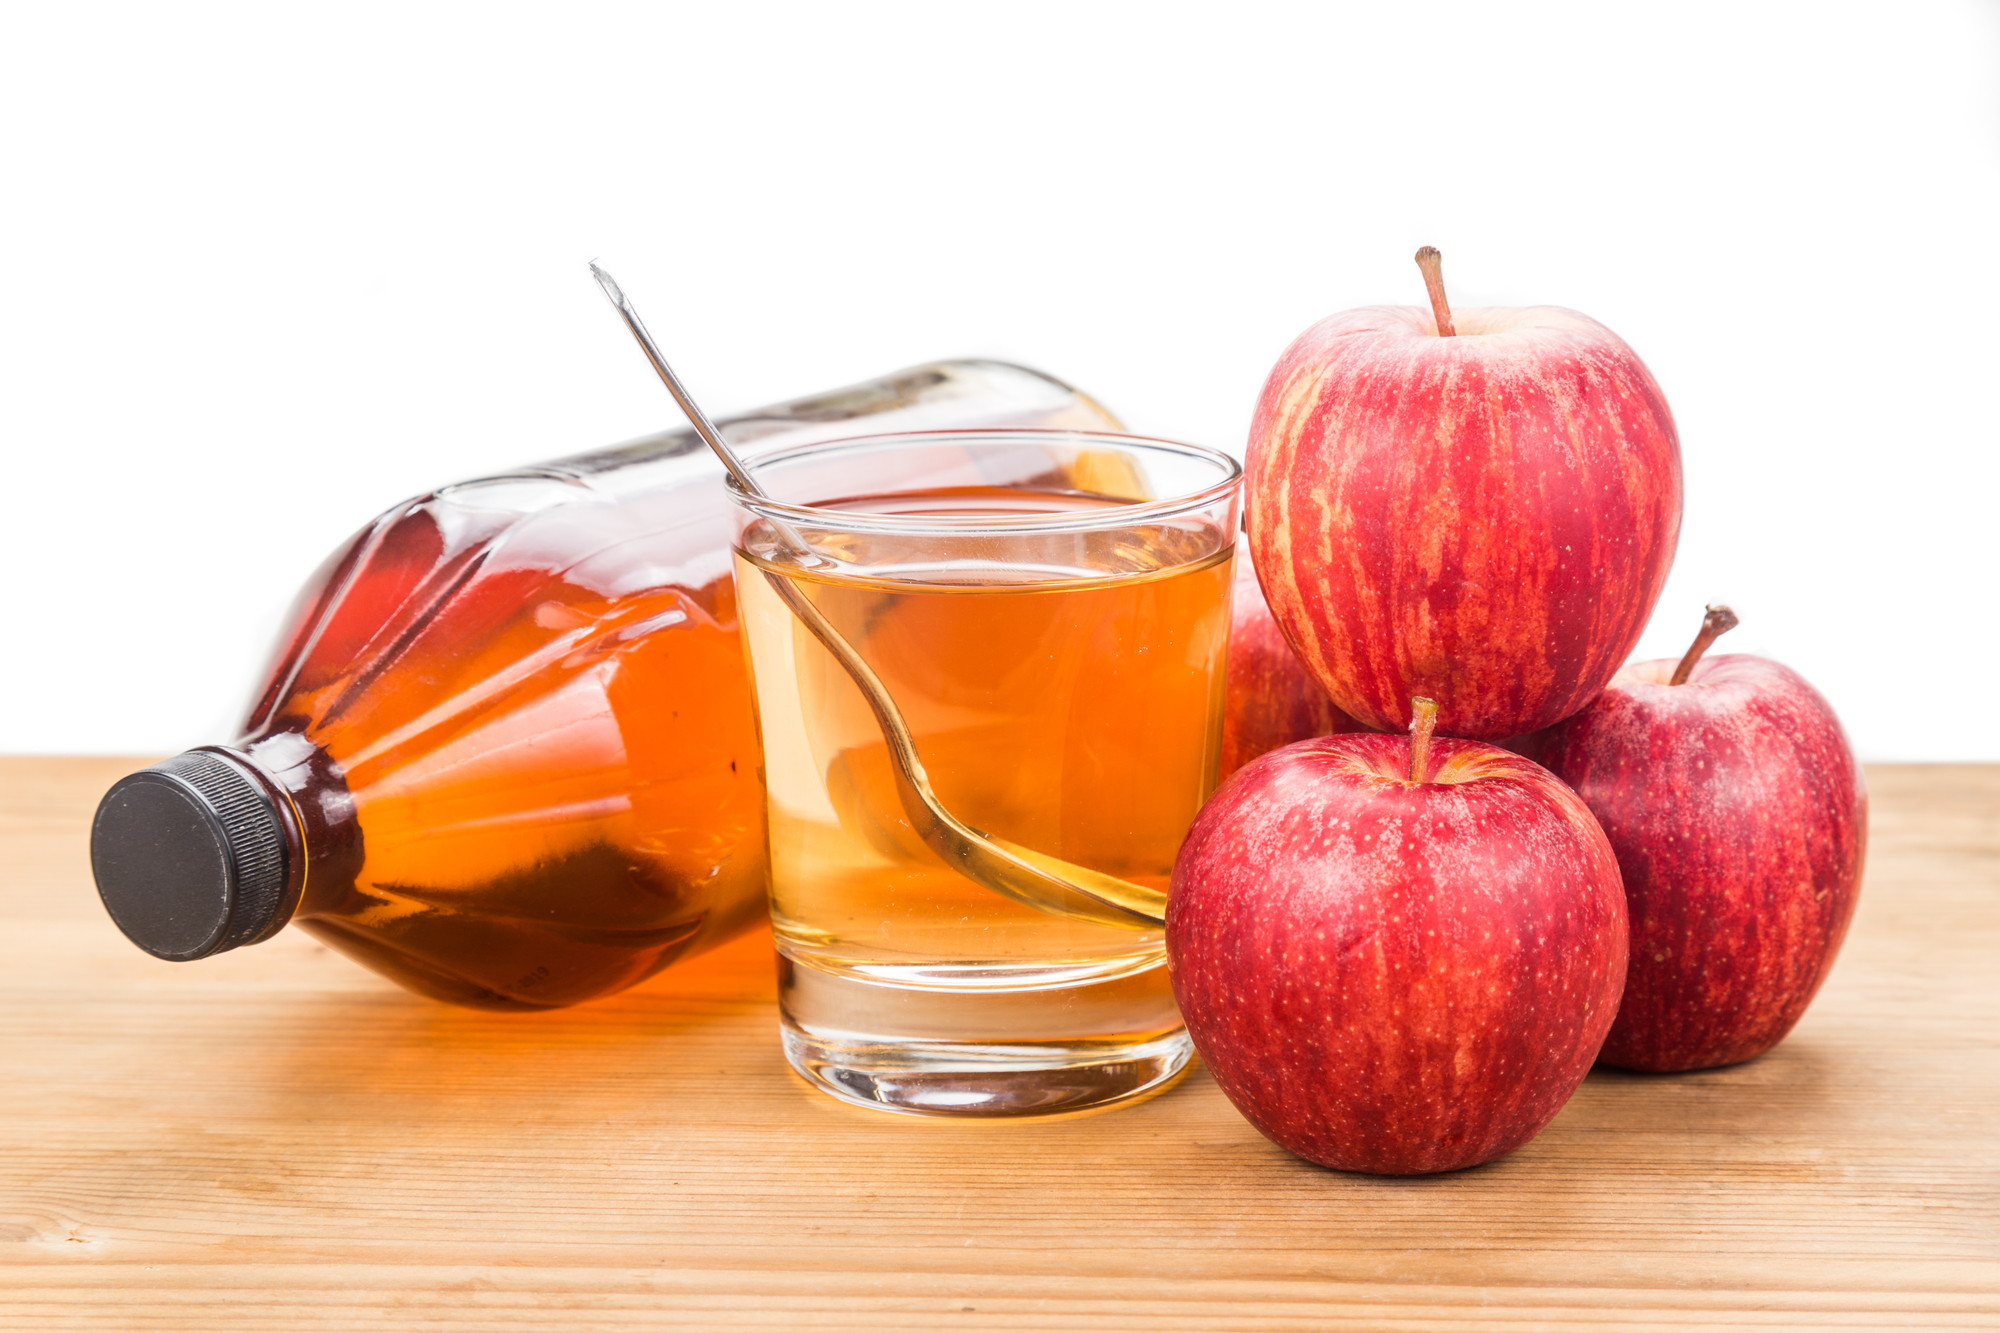 Stellar Health and Wellness recommends adding natural apple cider vinegar to your diet